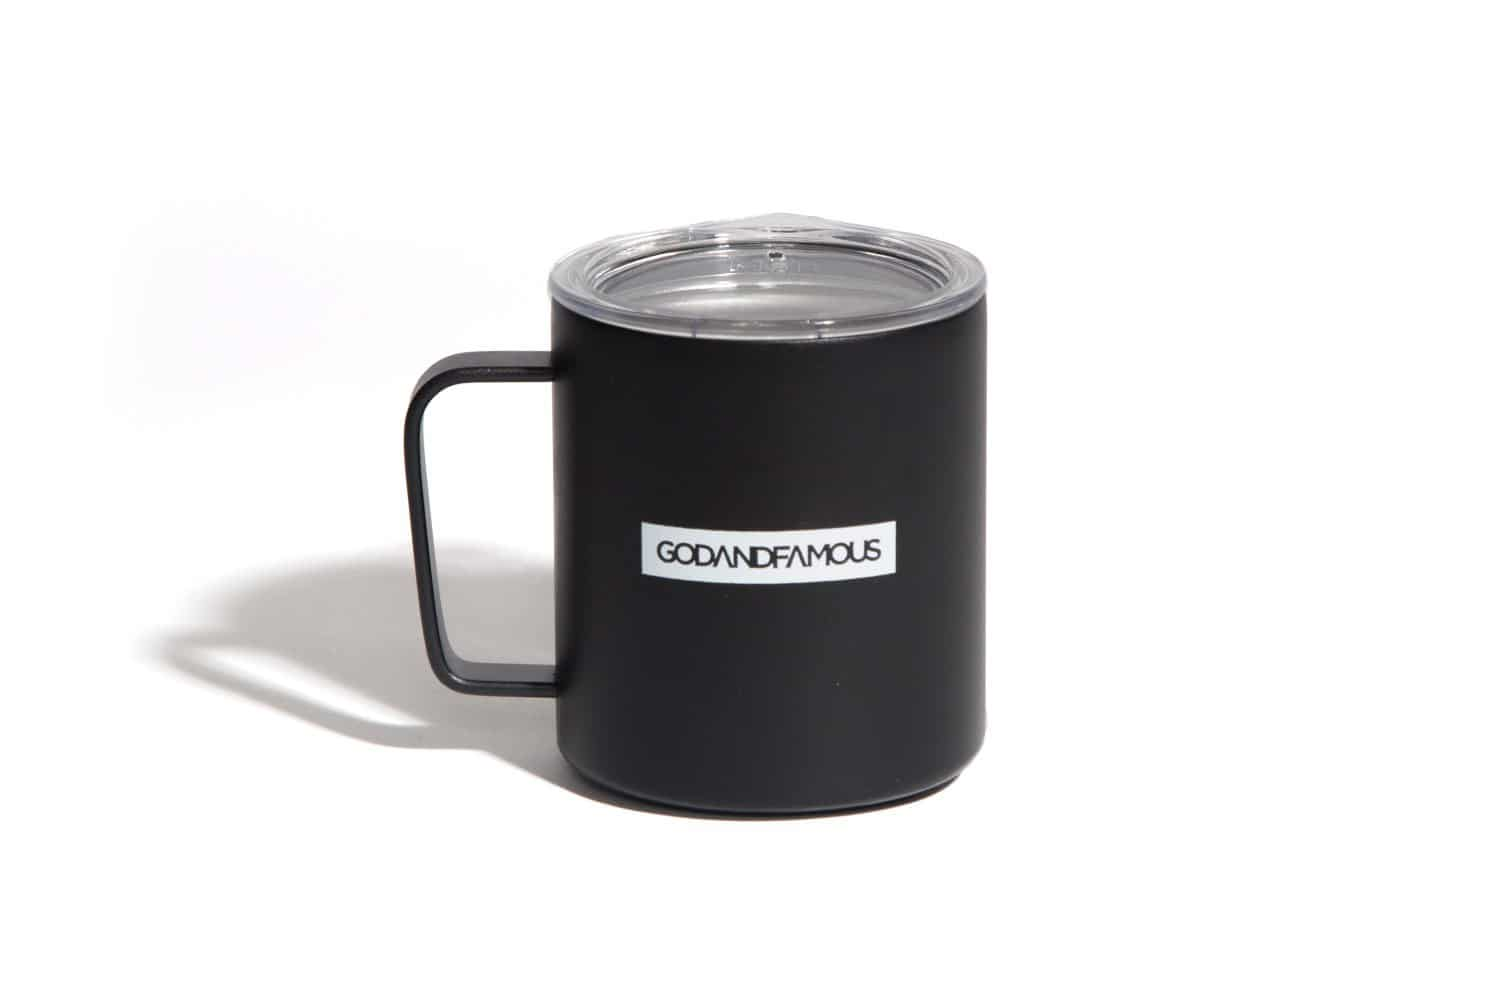 GOD & FAMOUS MiiR Insulated Camp Cup